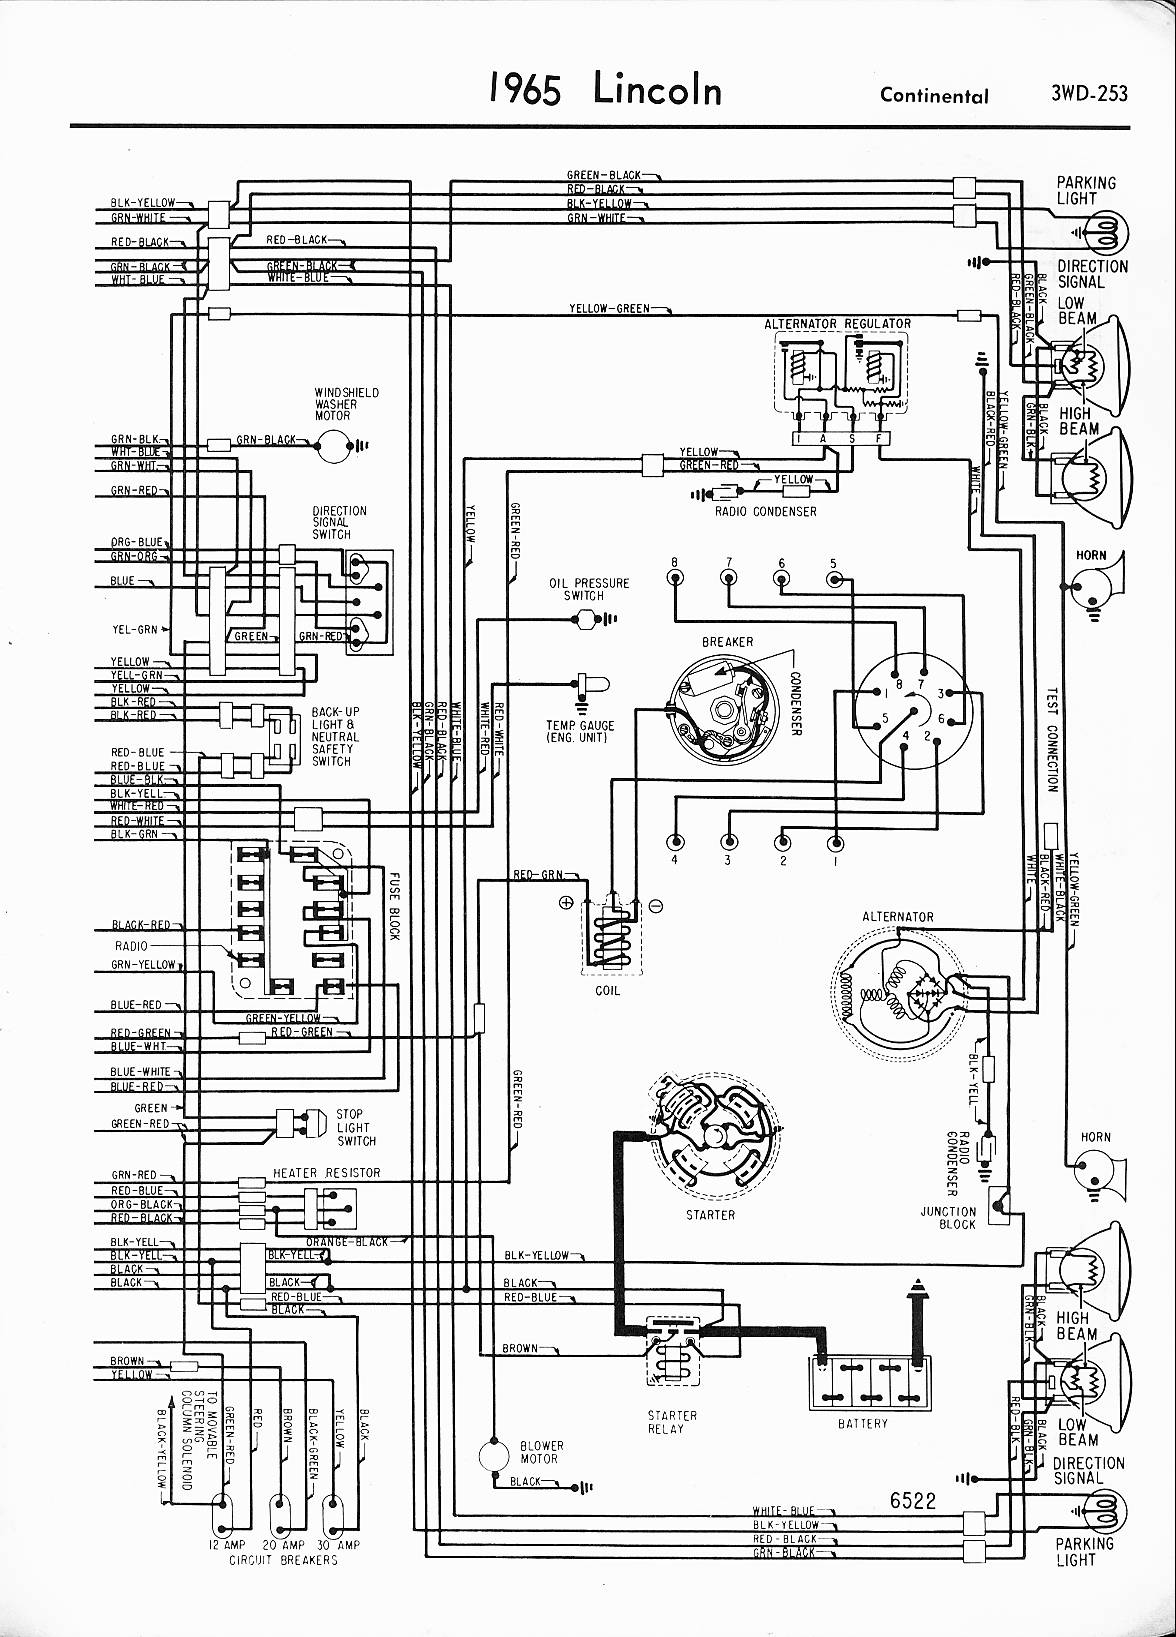 97 Toyota Celica Fuse Box Wiring Library 91 Mustang Wire Color 1991 Lincoln Continental Diagram Schematic Simple 1994 4runner